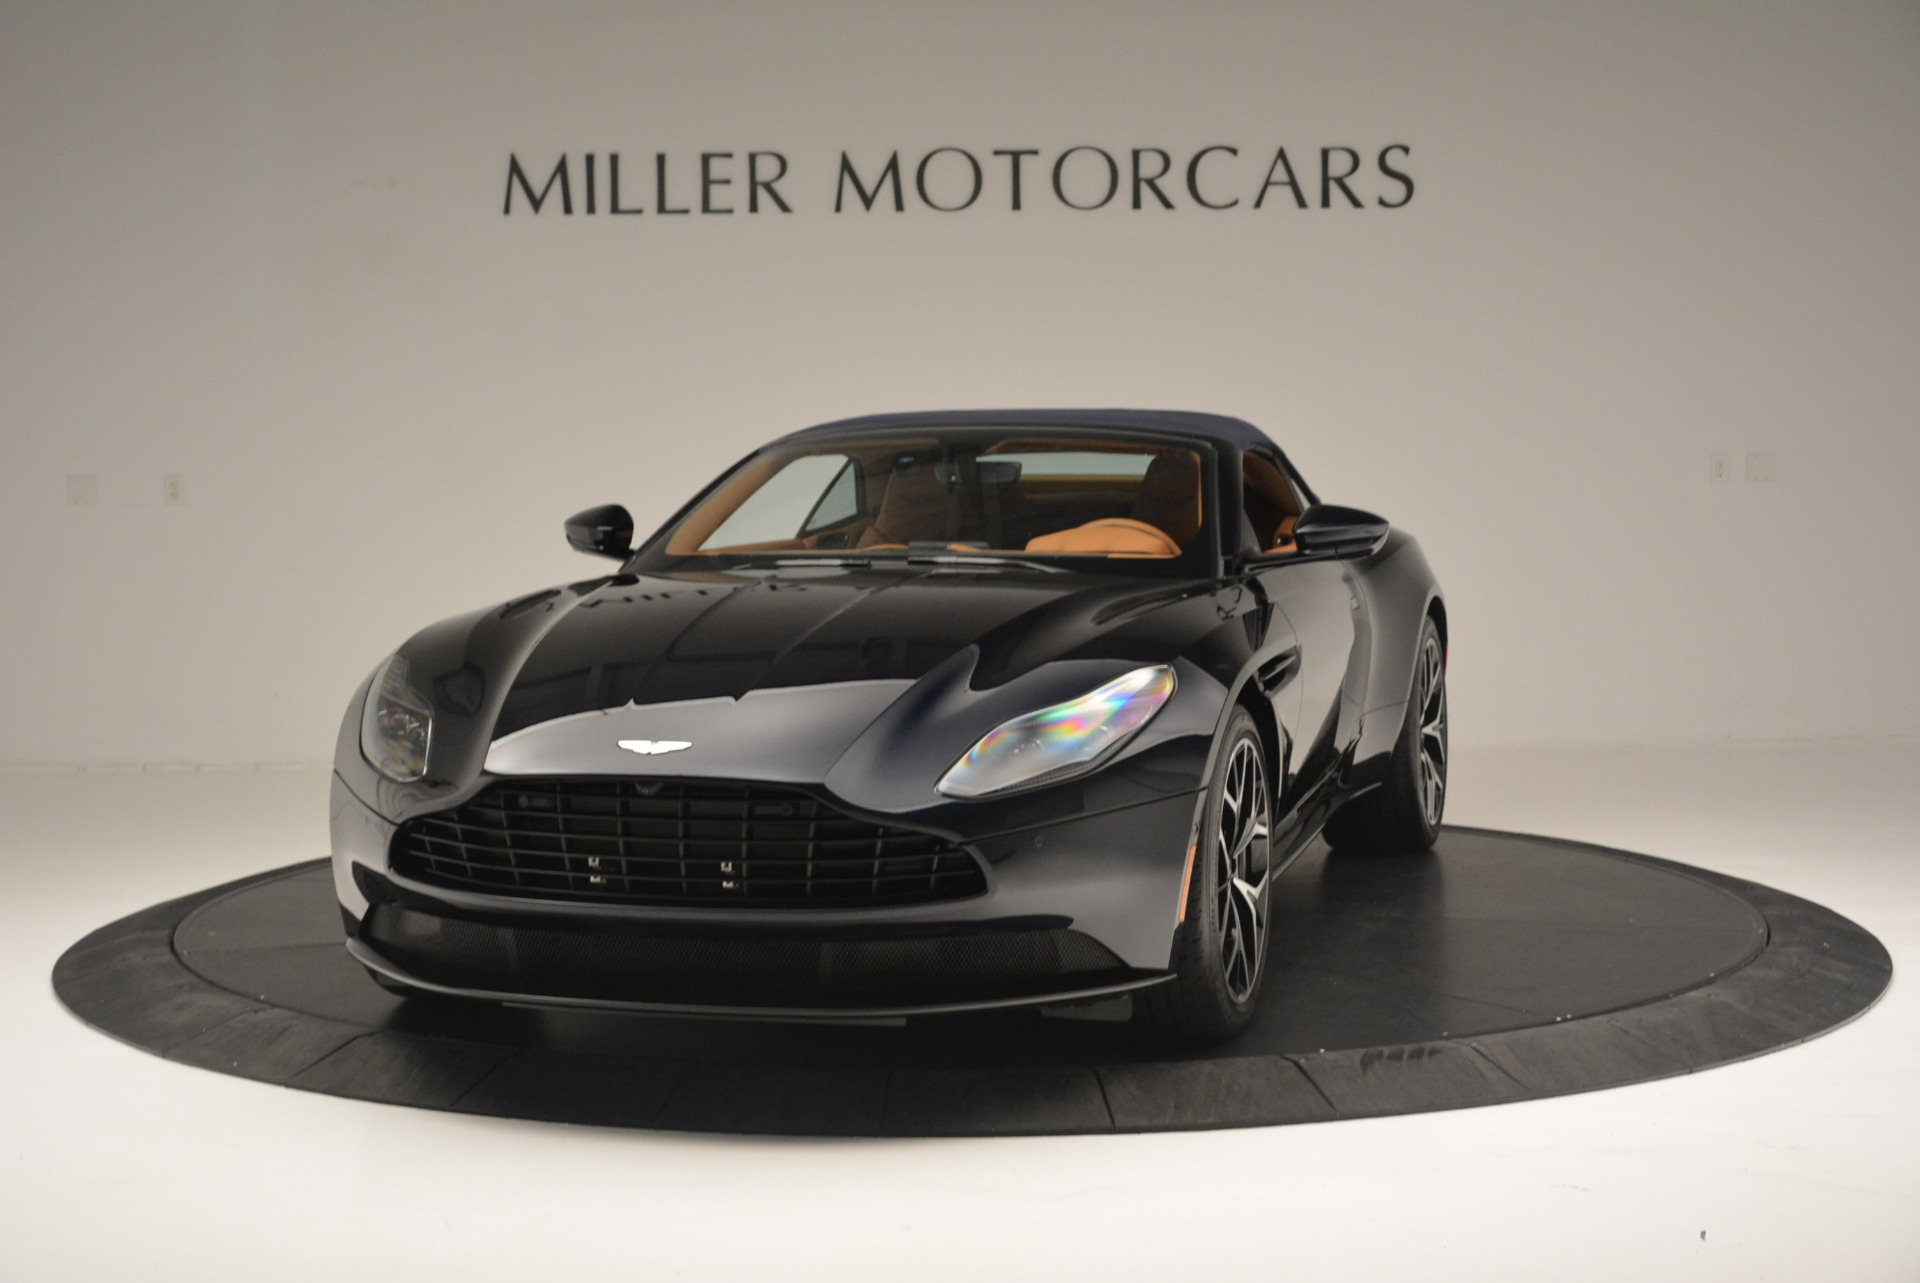 New 2019 Aston Martin DB11 Volante Volante For Sale In Westport, CT 2450_p13